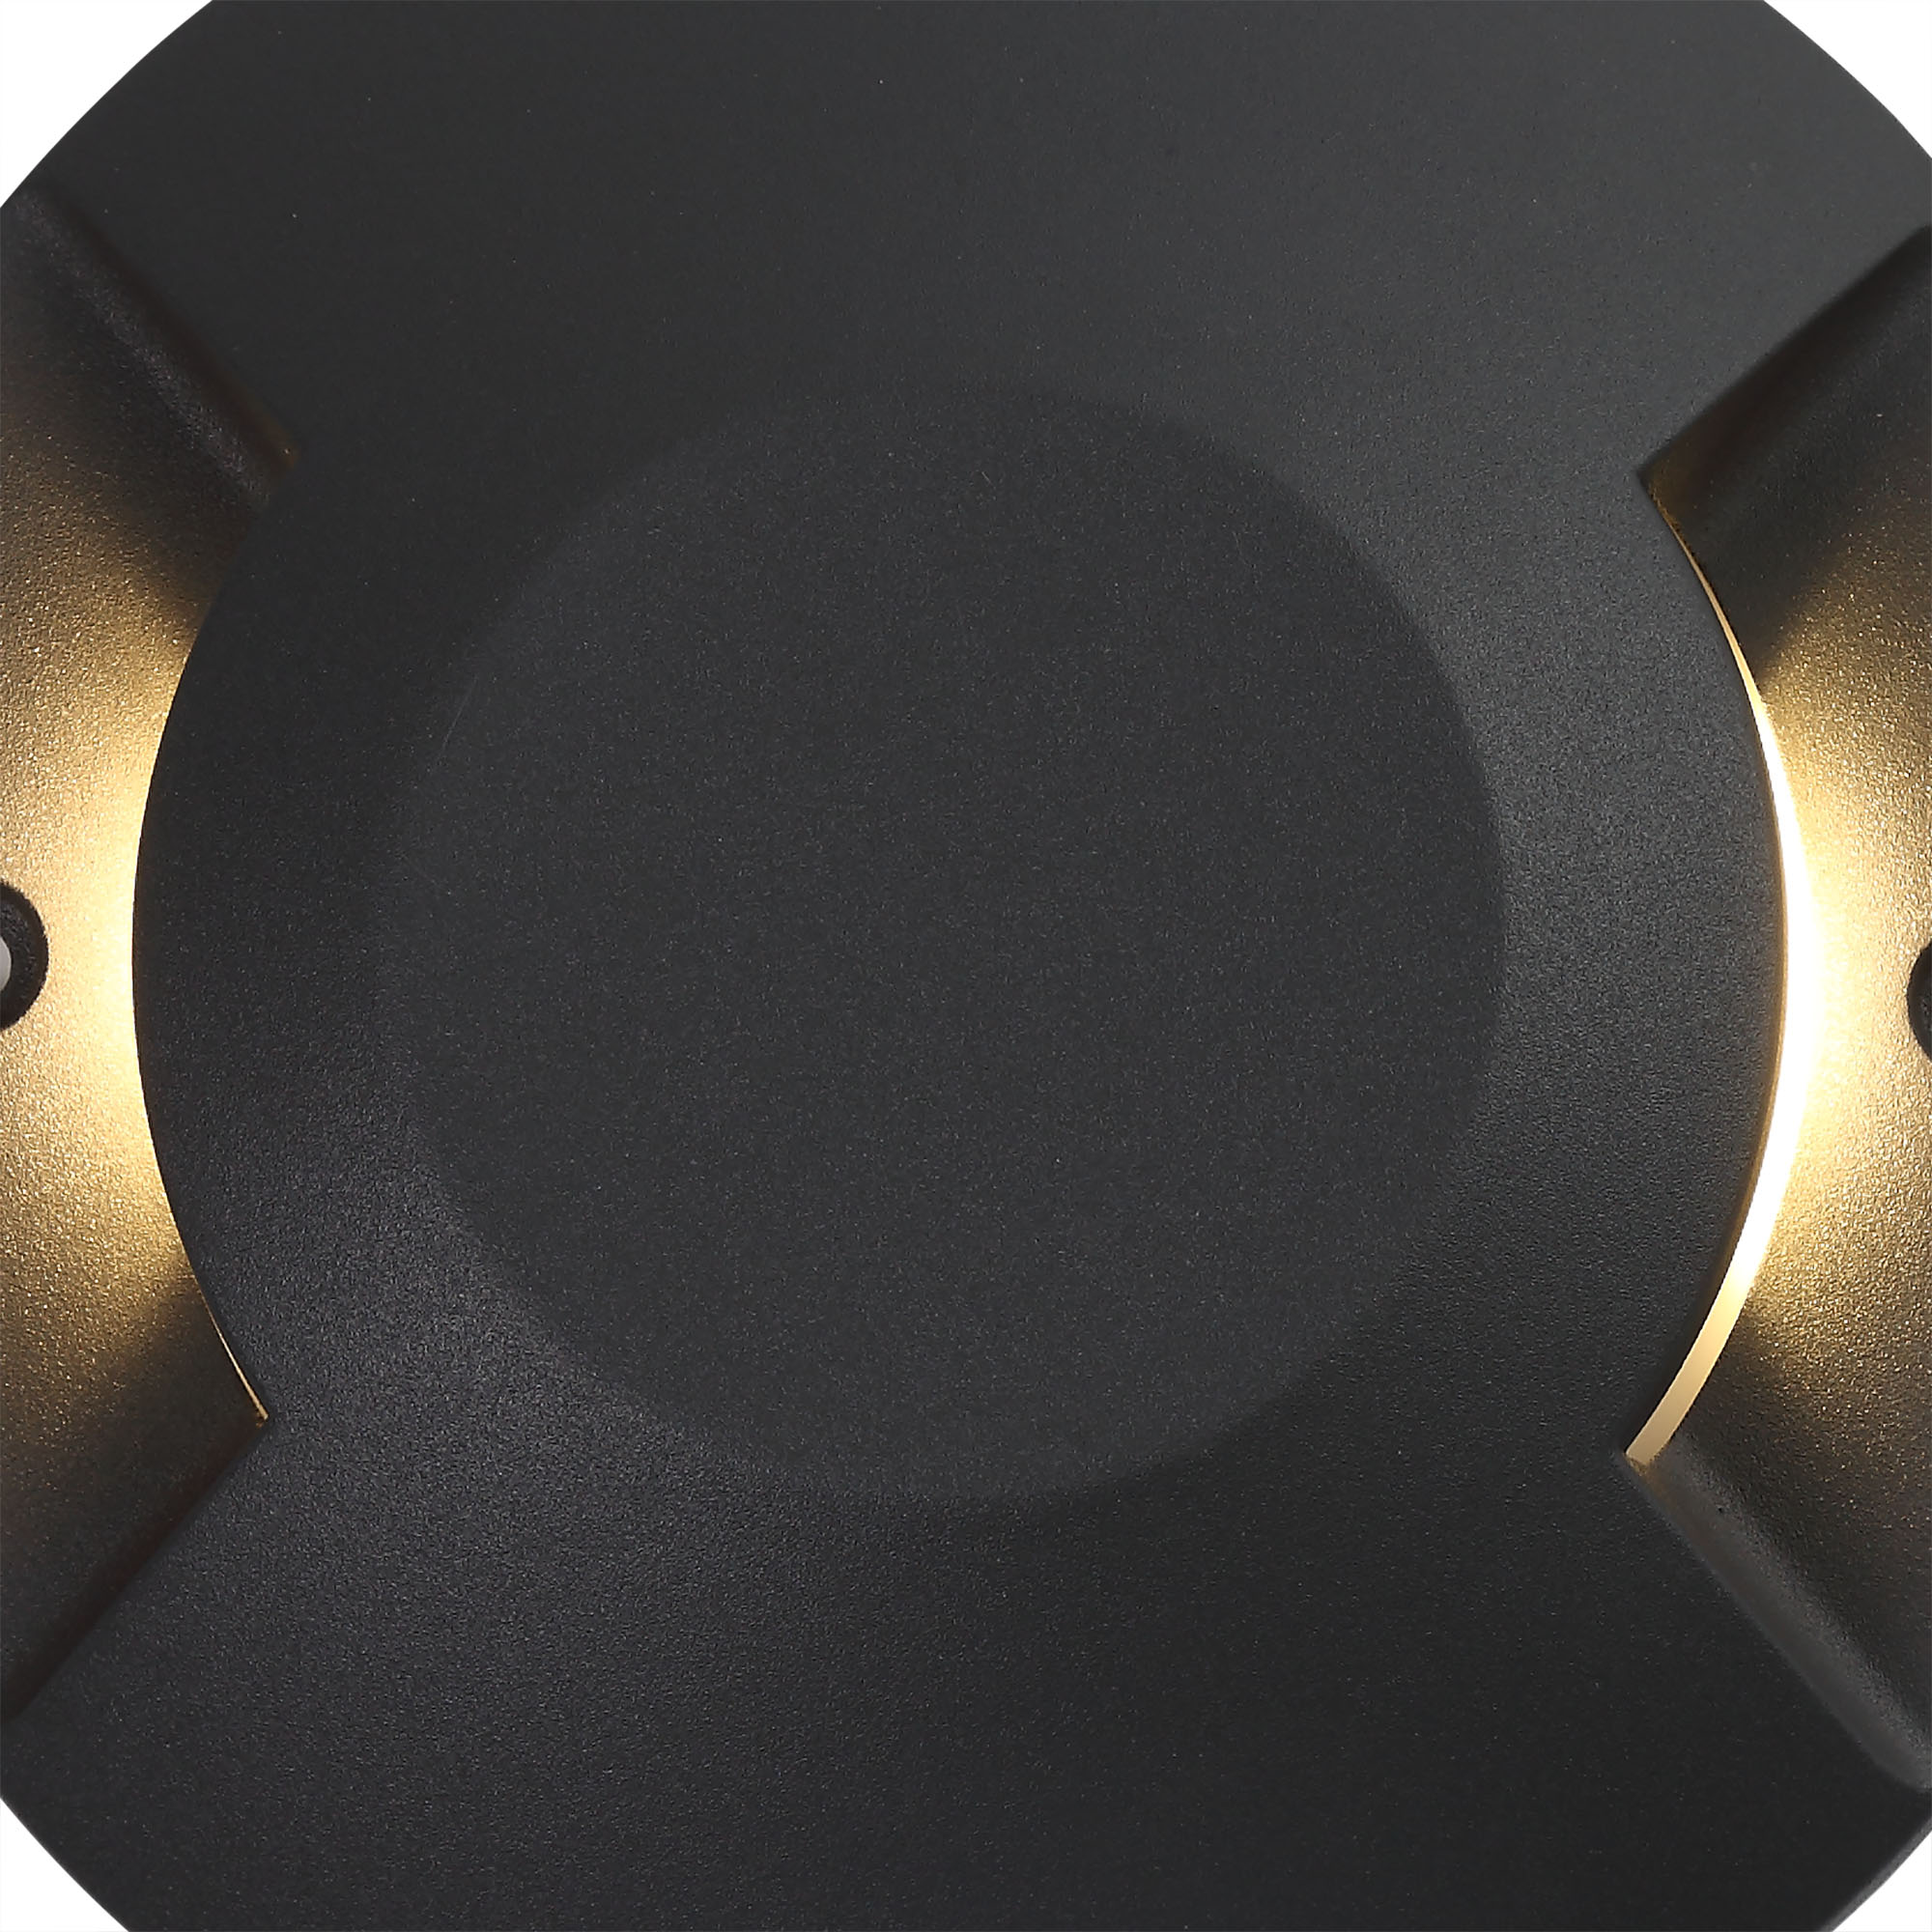 Above Ground (NO DIGGING REQUIRED) Driveover 2 Light, 2 x 6W LED, 3000K, 236lm, IP67, IK10, Anthracite, 3yrs Warranty